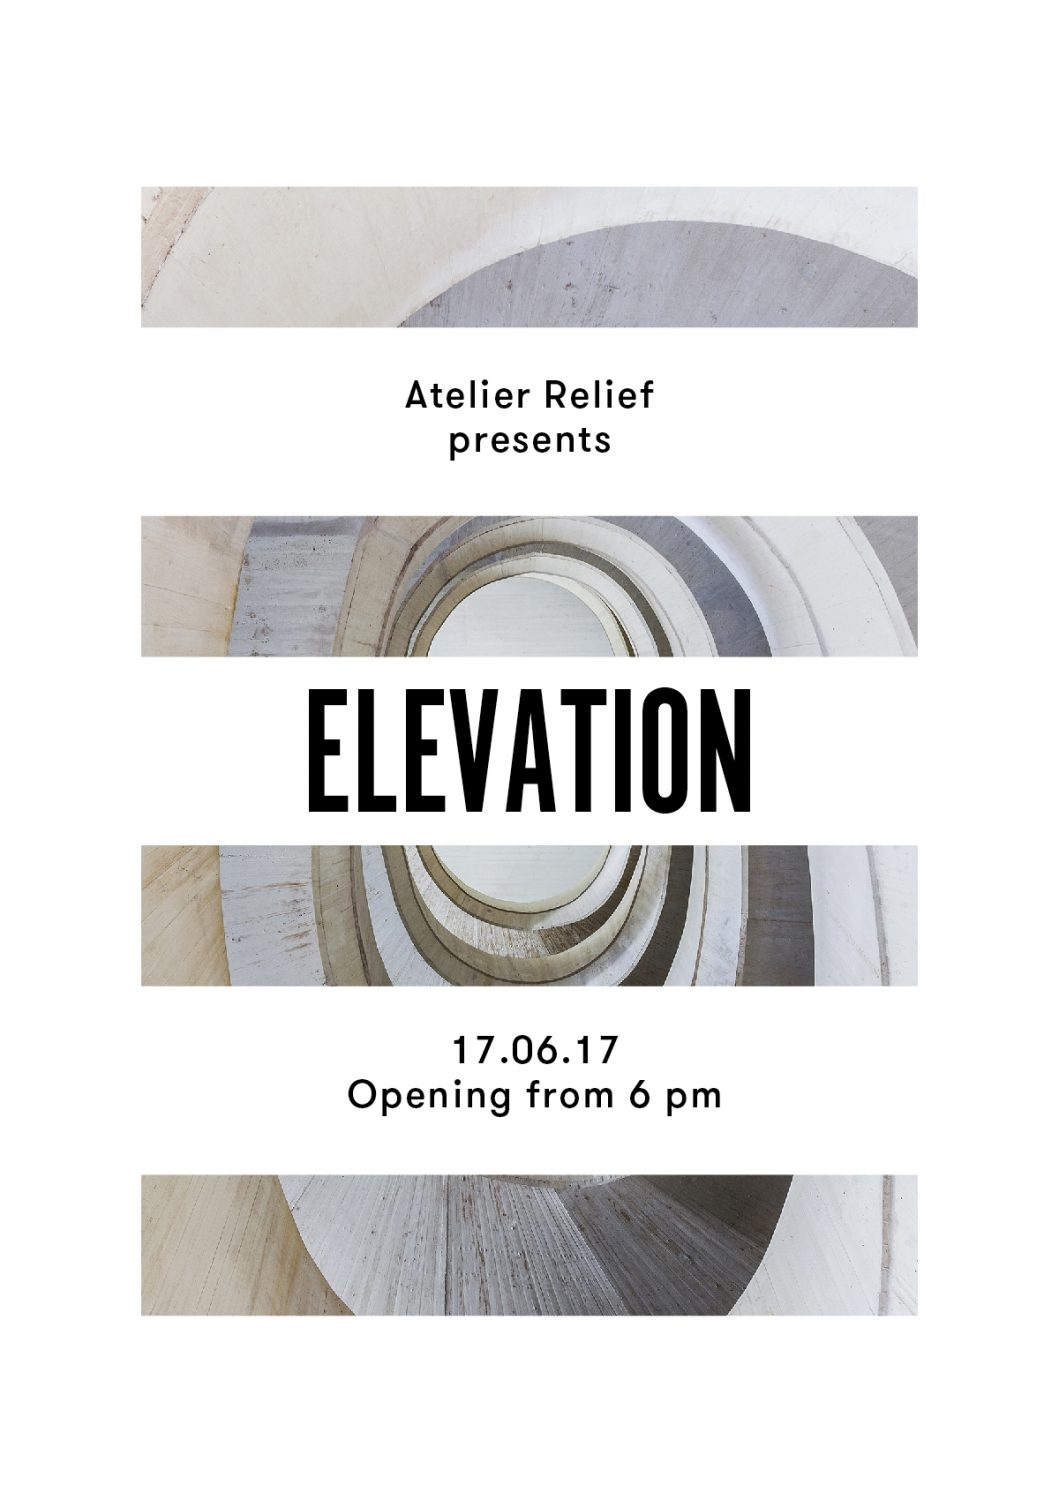 Atelier Relief 2 Year Anniversary / ELEVATION